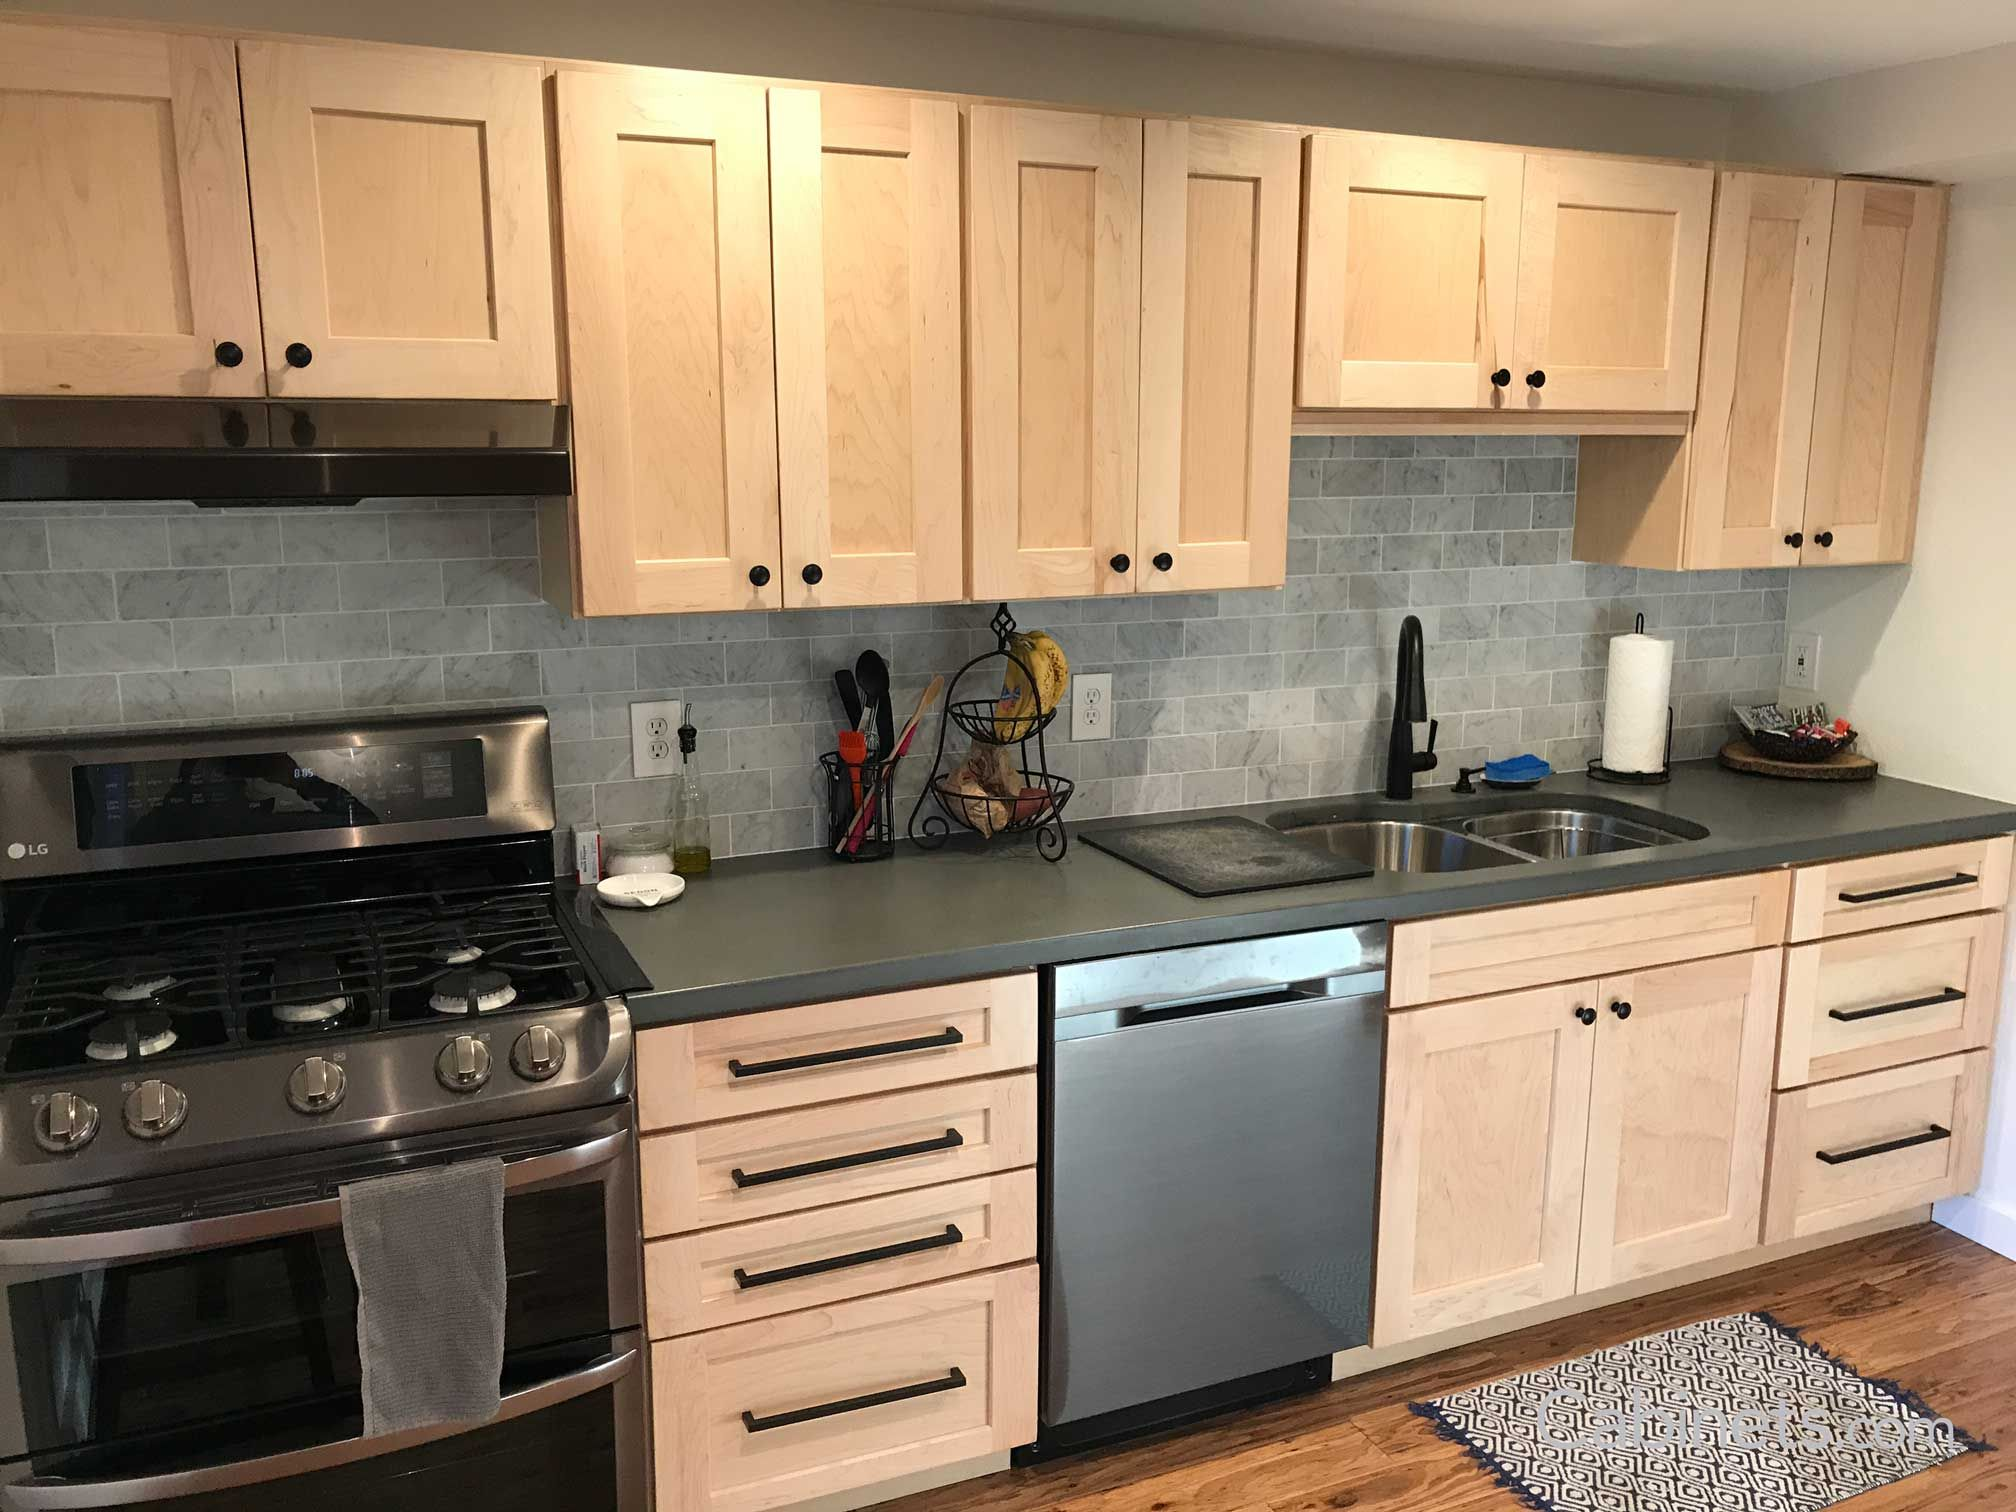 Shaker Ii Maple Natural Cabinets Naturalcabinets Naturalkitchen Maple Kitchen Cabinets Birch Kitchen Cabinets Kitchen Remodel Small